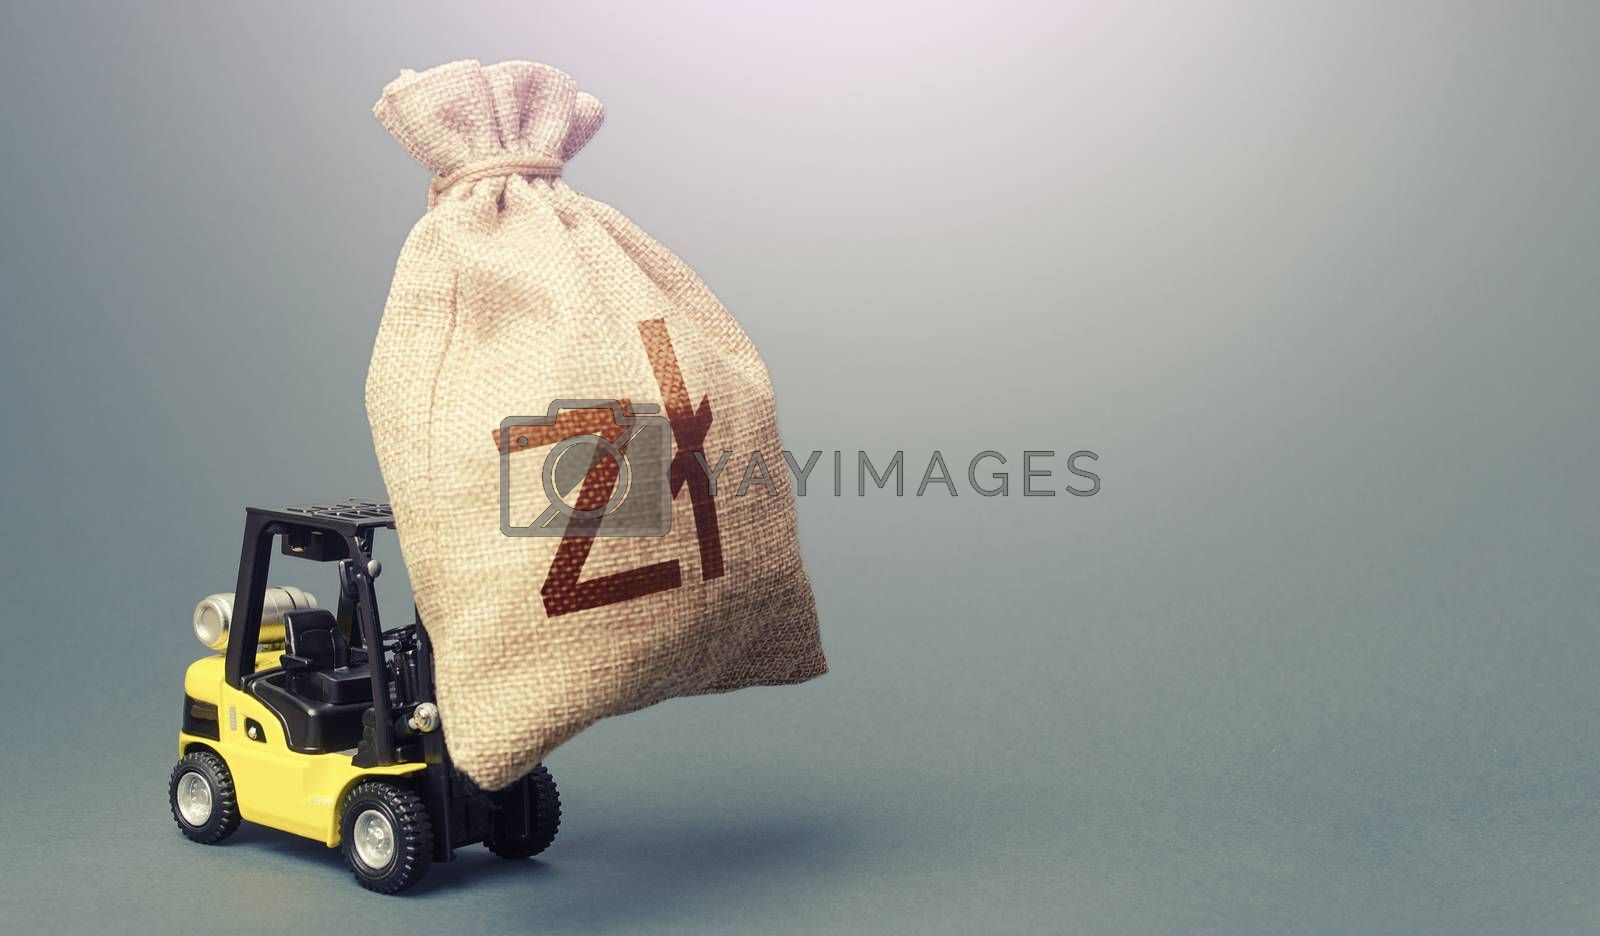 Forklift carrying a polish zloty money bag. Anti-crisis budget. Borrowing on capital market. Stimulating economy. Subsidies soft loans. Investments. Strongest financial assistance, business support.